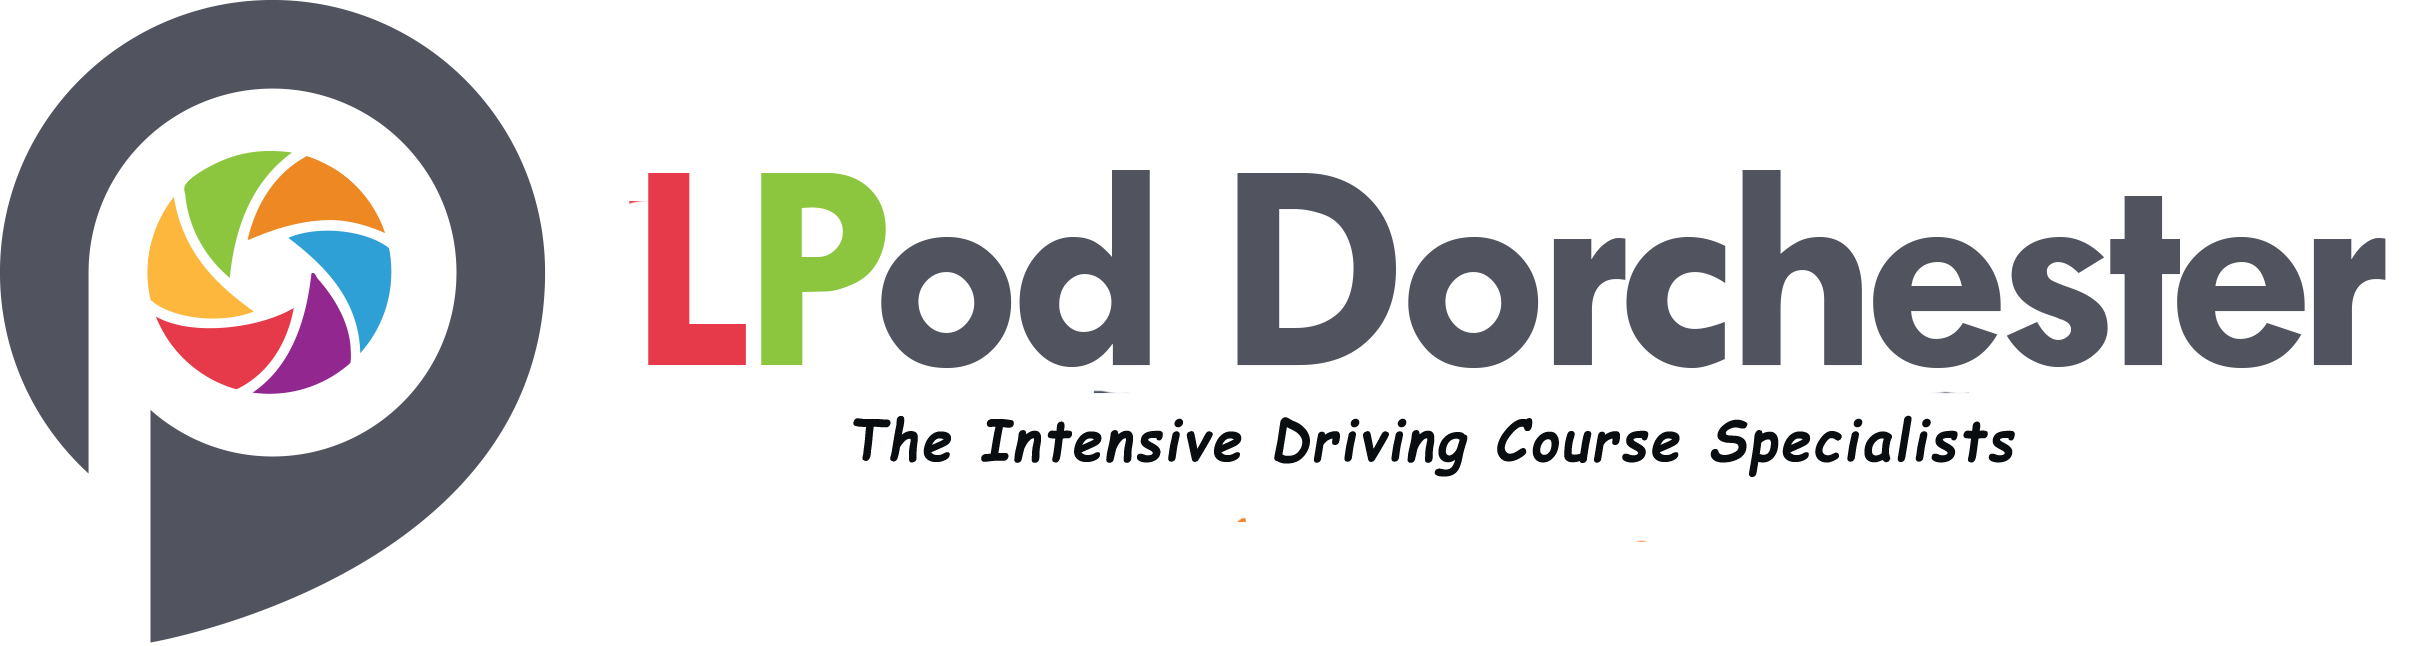 intensive driving courses dorchester, intensive driving lessons dorchester